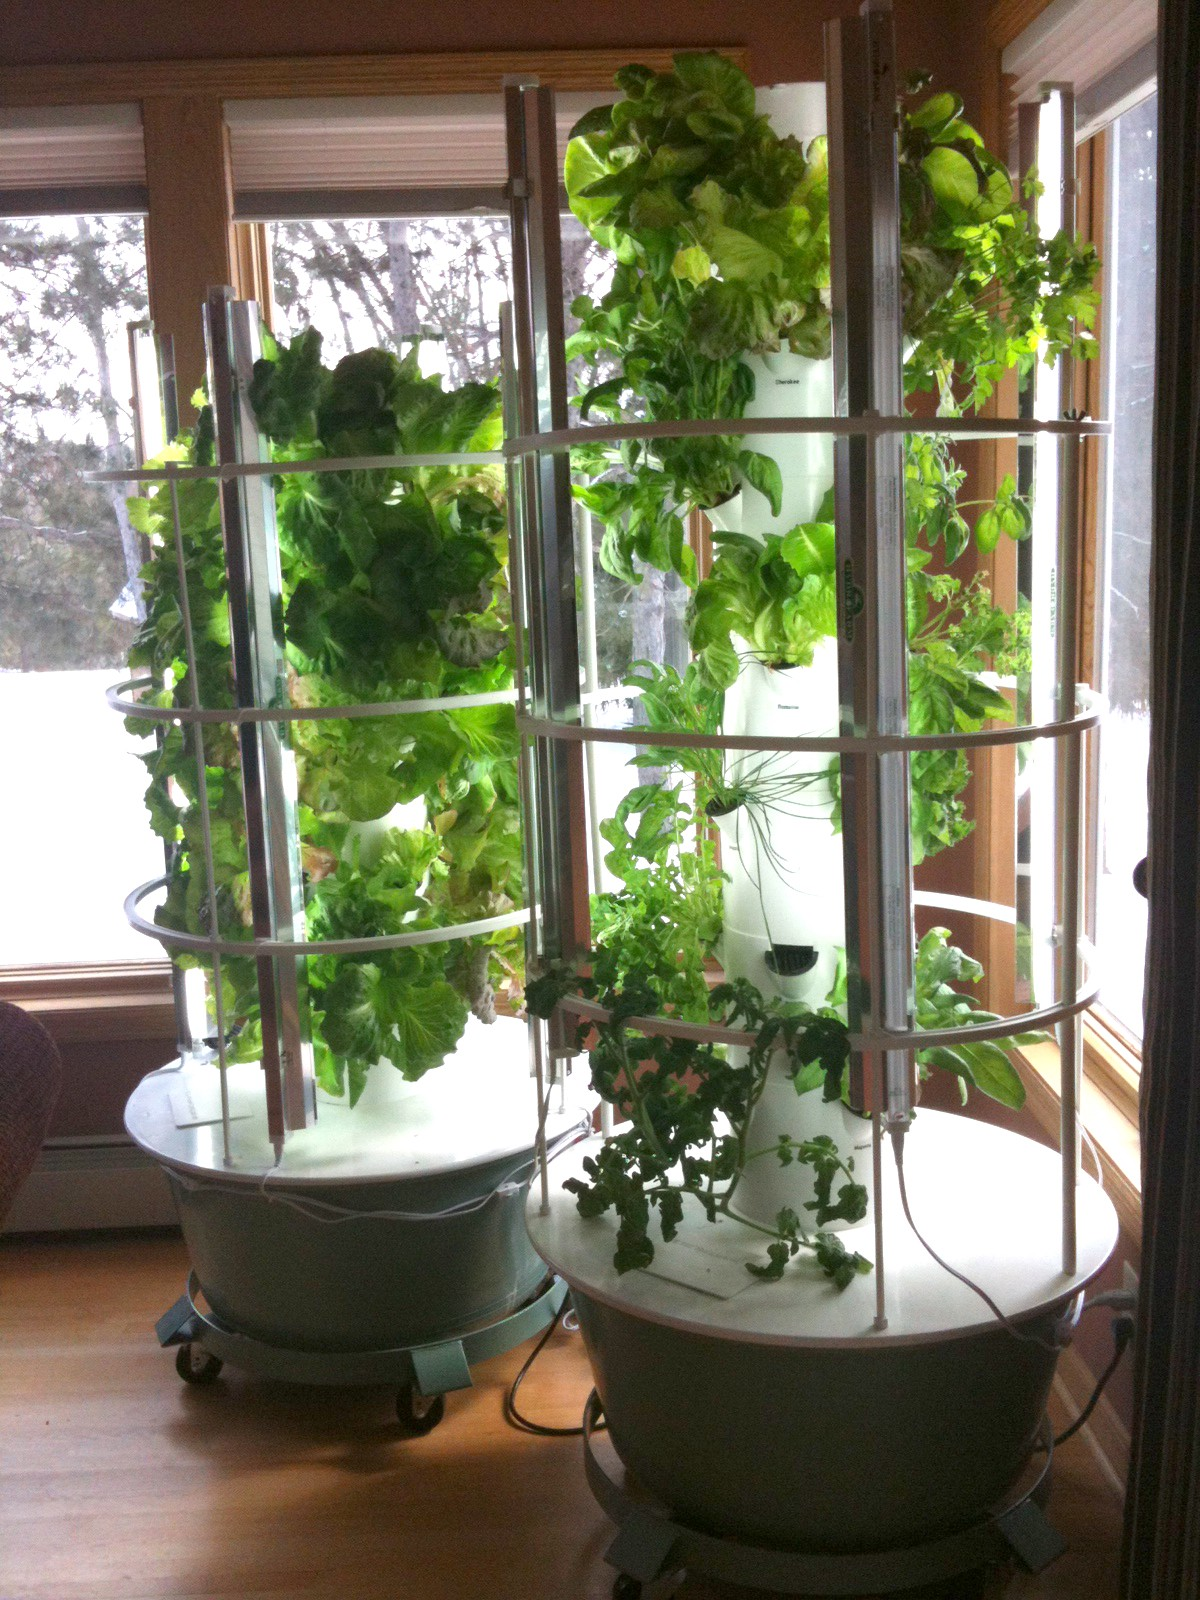 Personal Indoor Farming Competitive Landscape Gabe